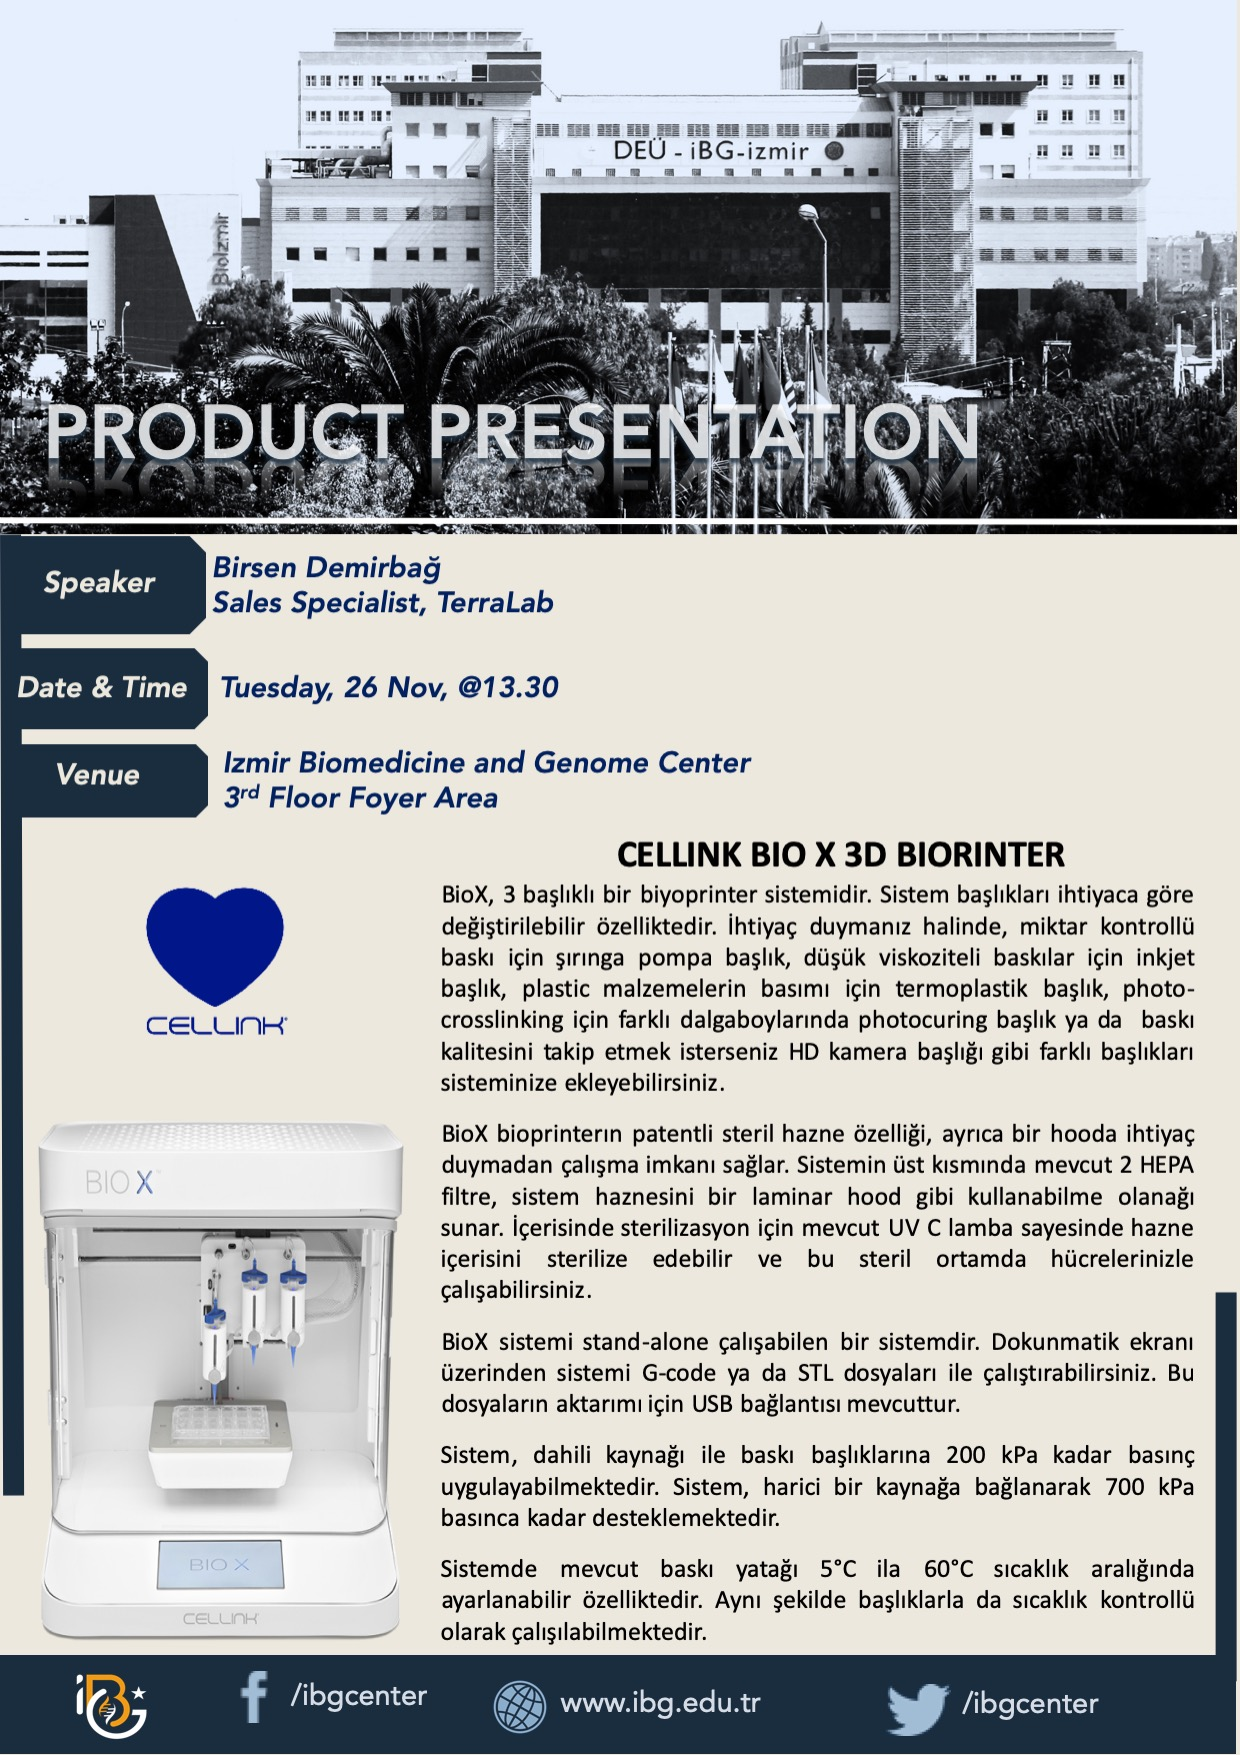 CELLINK BIO X 3D BIORINTER